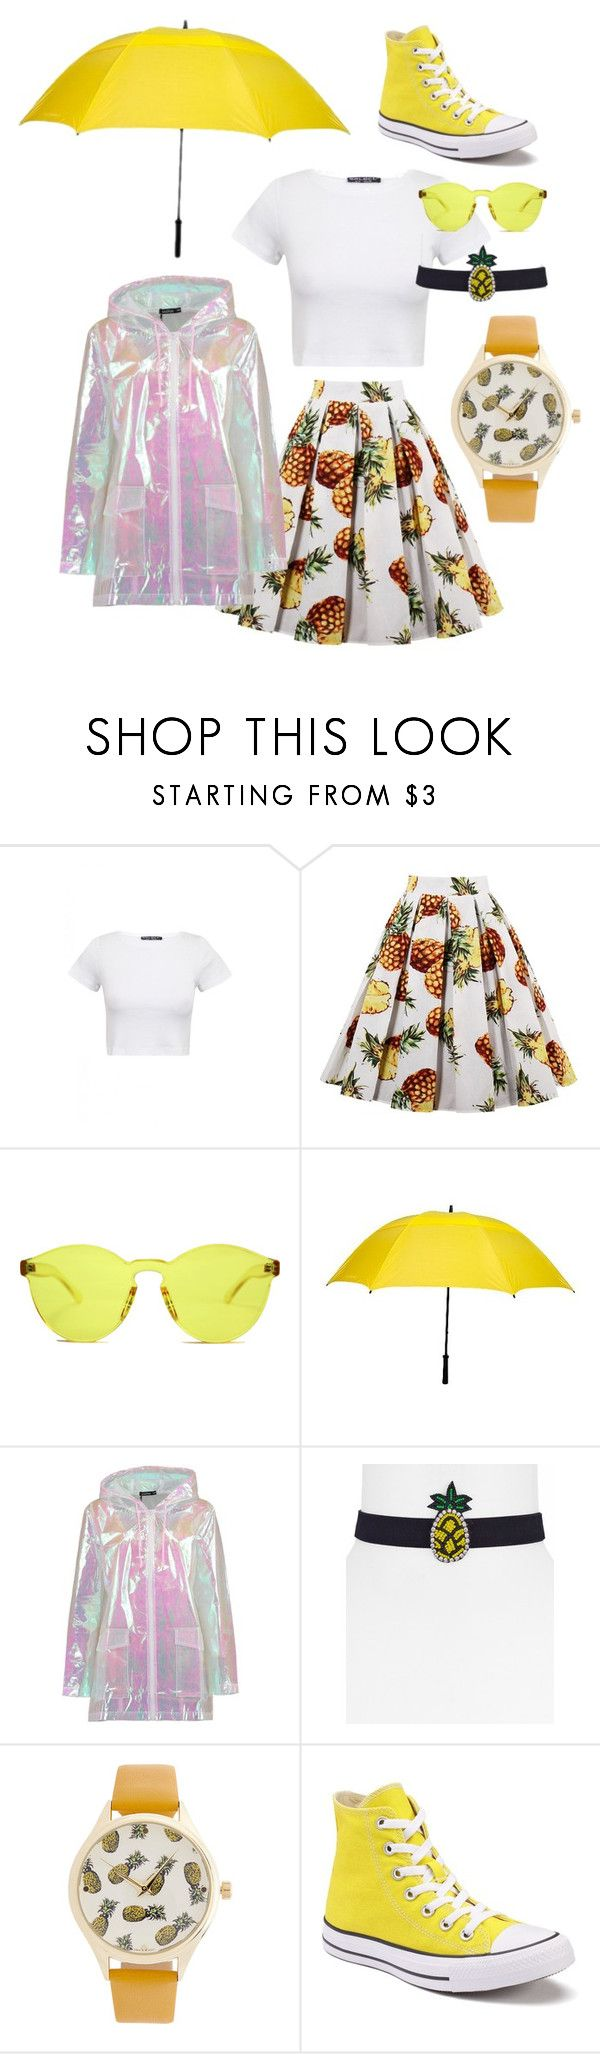 """Sunny Weather"" by grahamzn on Polyvore featuring RumbaTime, Futai, Boohoo, Aqua, Converse and rain"